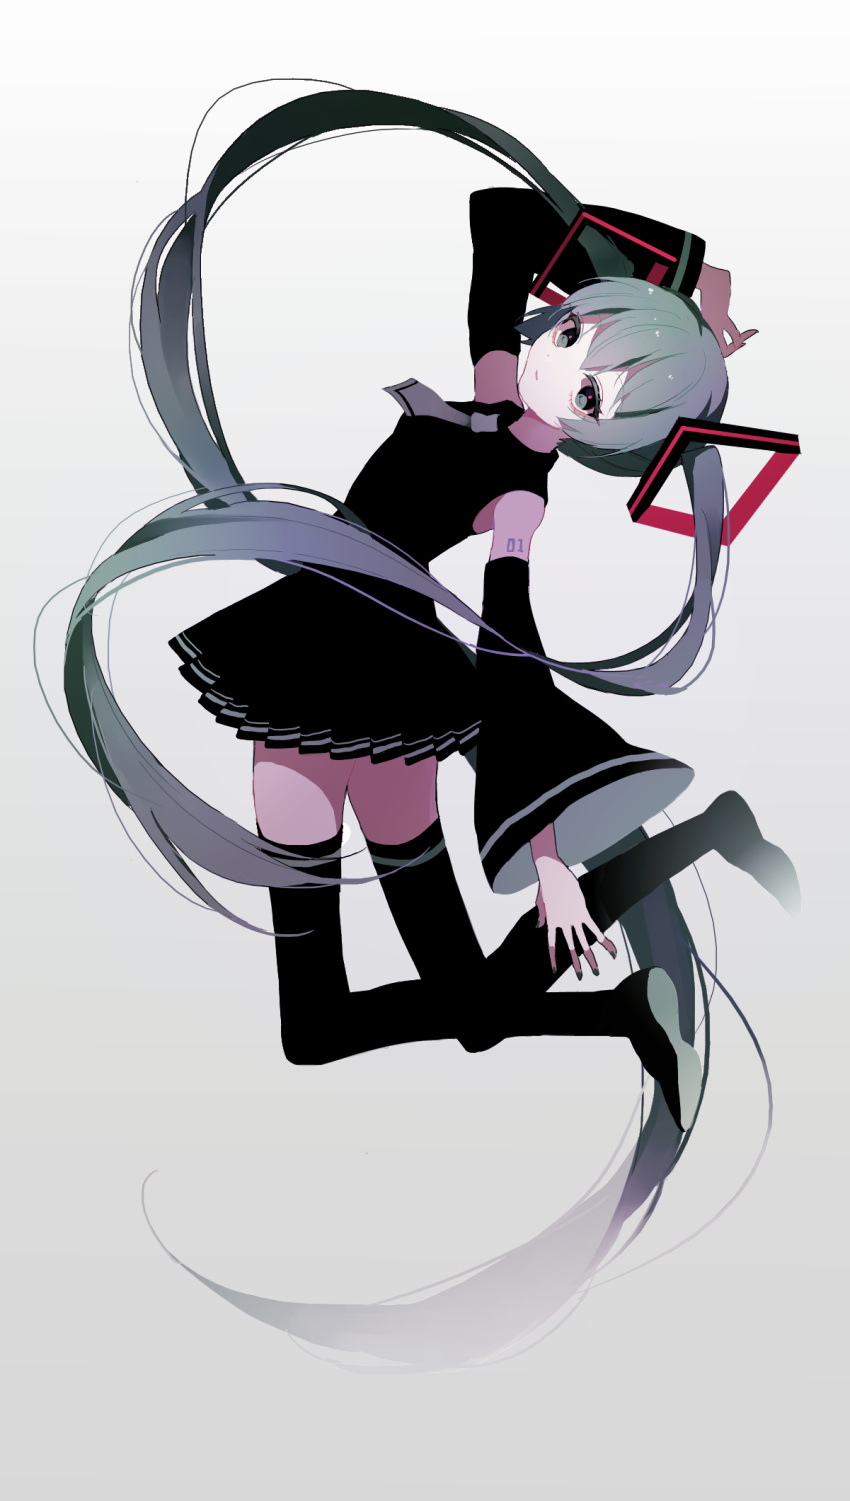 1girl bangs bent_elbow bent_knees black_dress black_footwear black_legwear closed_mouth commentary_request dress gradient_hair grey_background grey_neckwear hair_between_eyes hair_ornament hatsune_miku head_tilt highres horizontal_stripes long_hair looking_at_viewer multicolored_hair solo striped striped_legwear sulfur_(1453rk) very_long_hair vocaloid